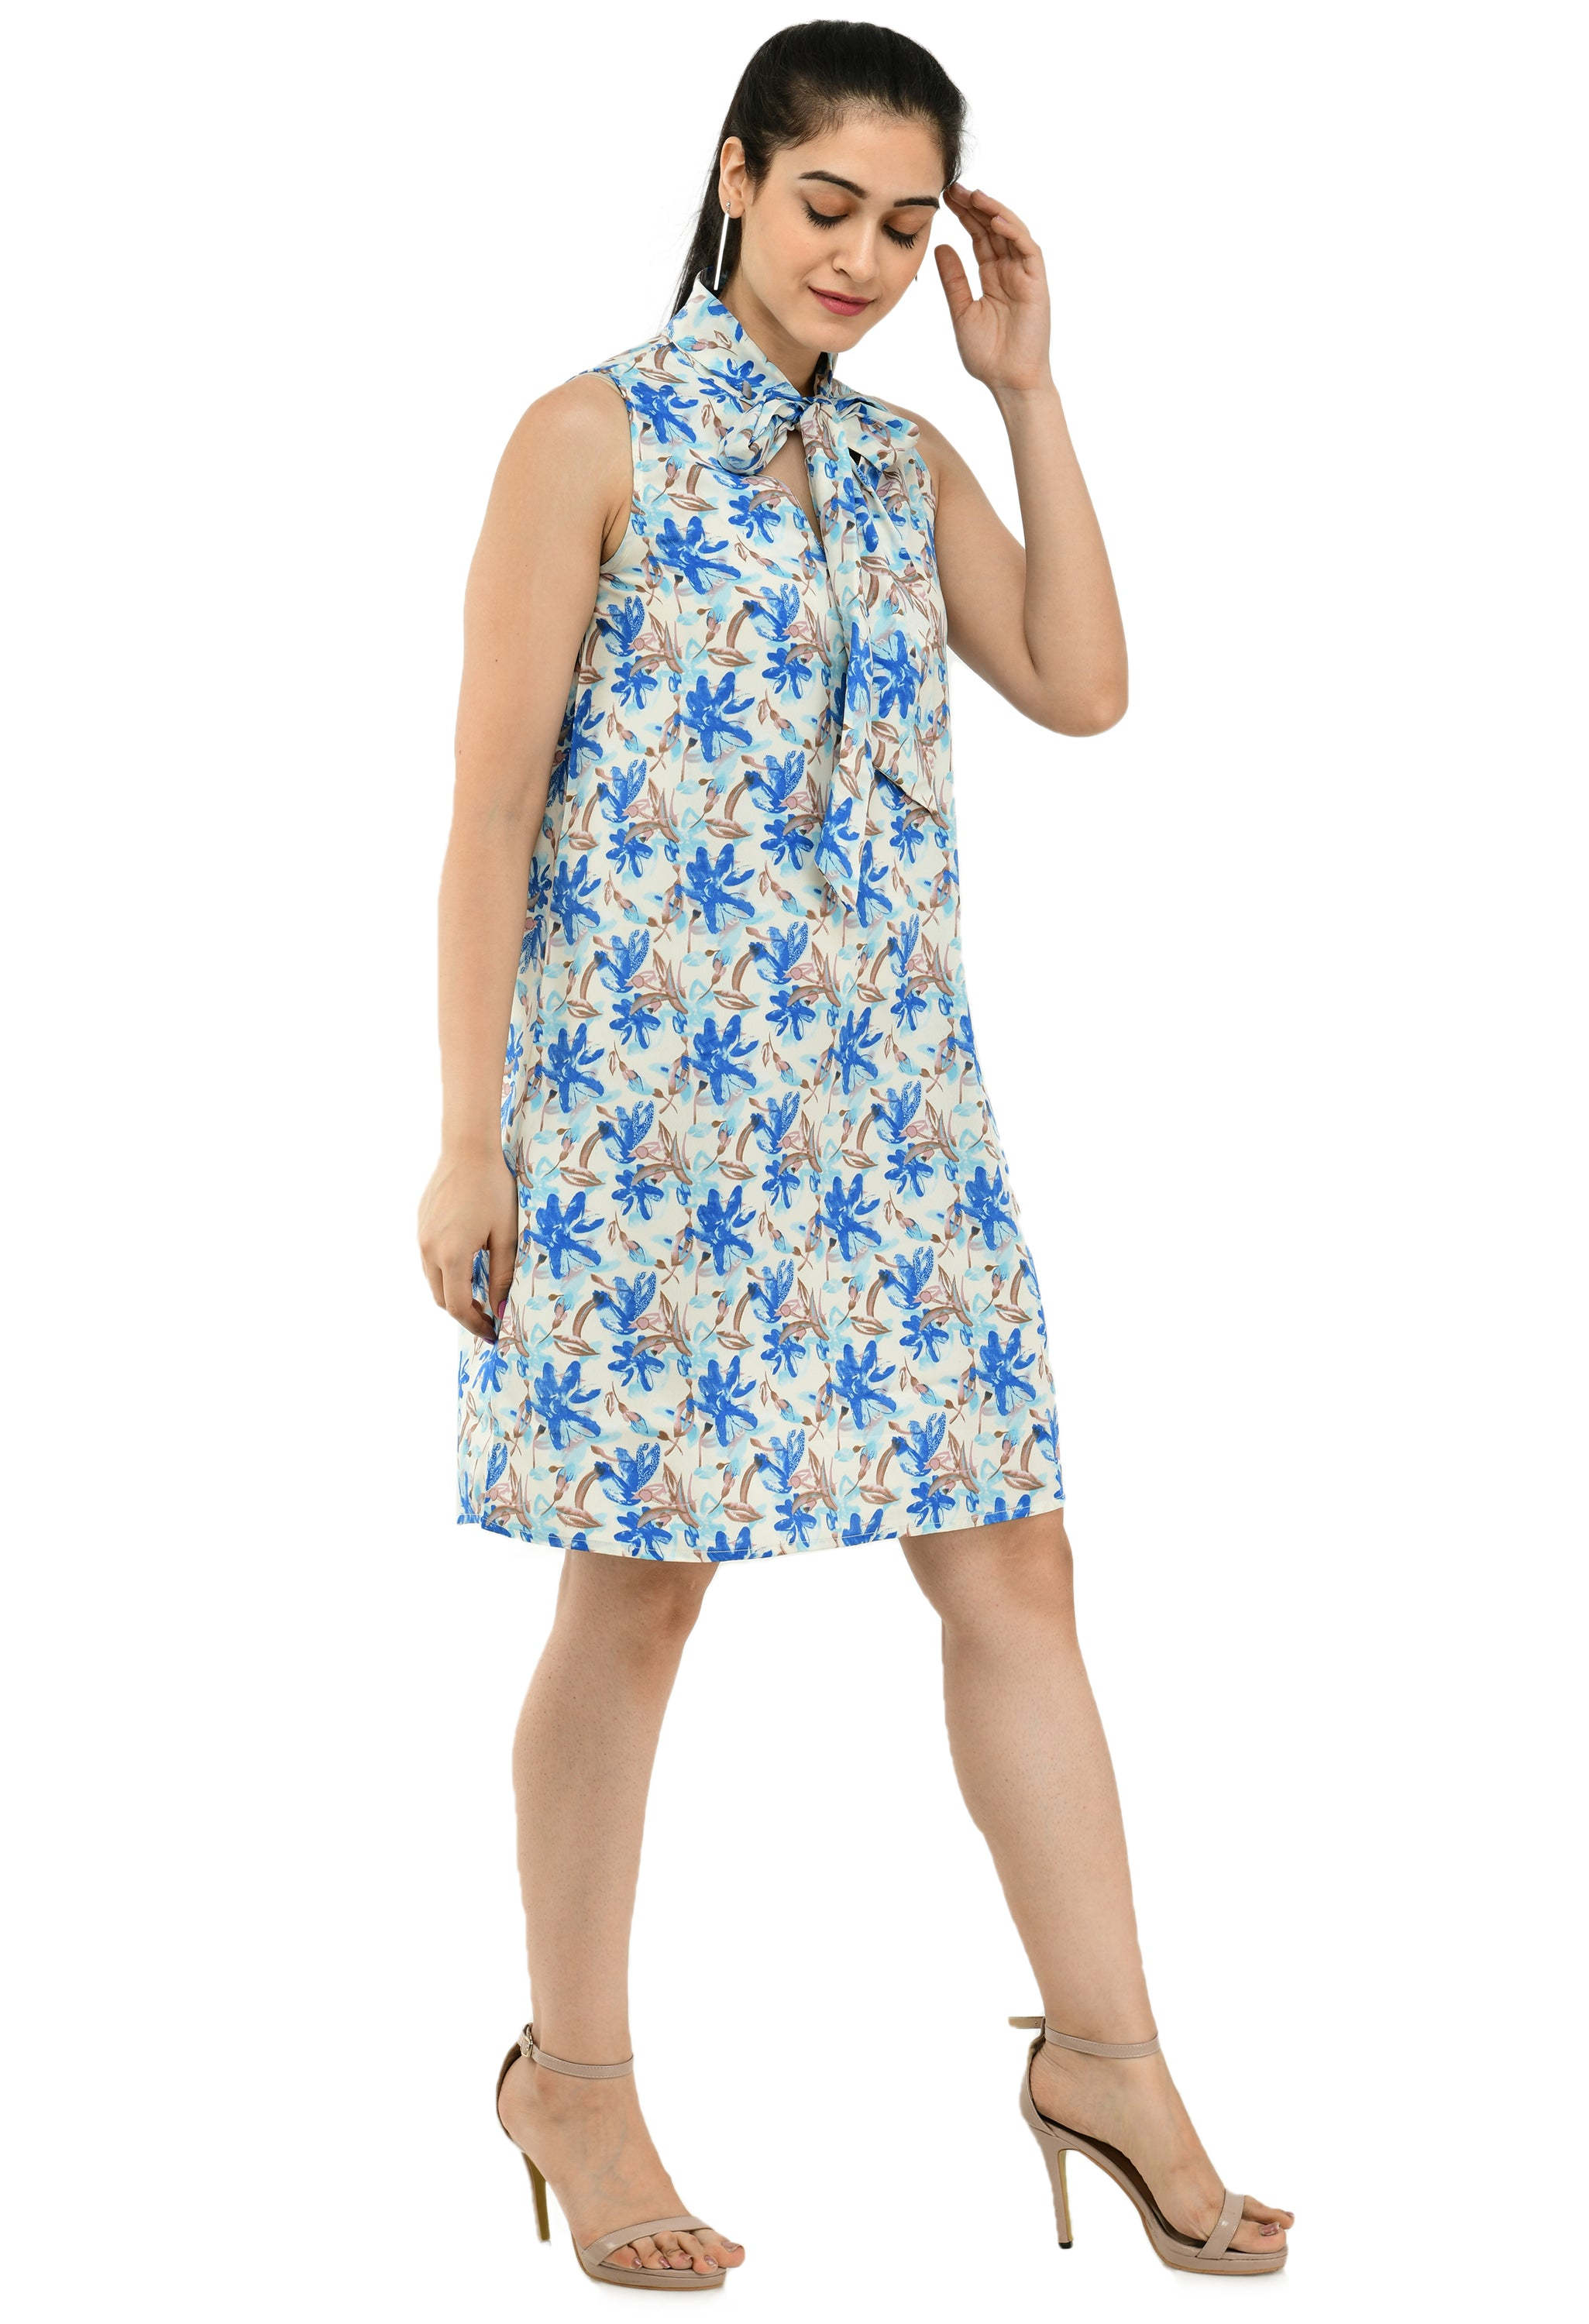 Women Multicolored Floral Printed Dress